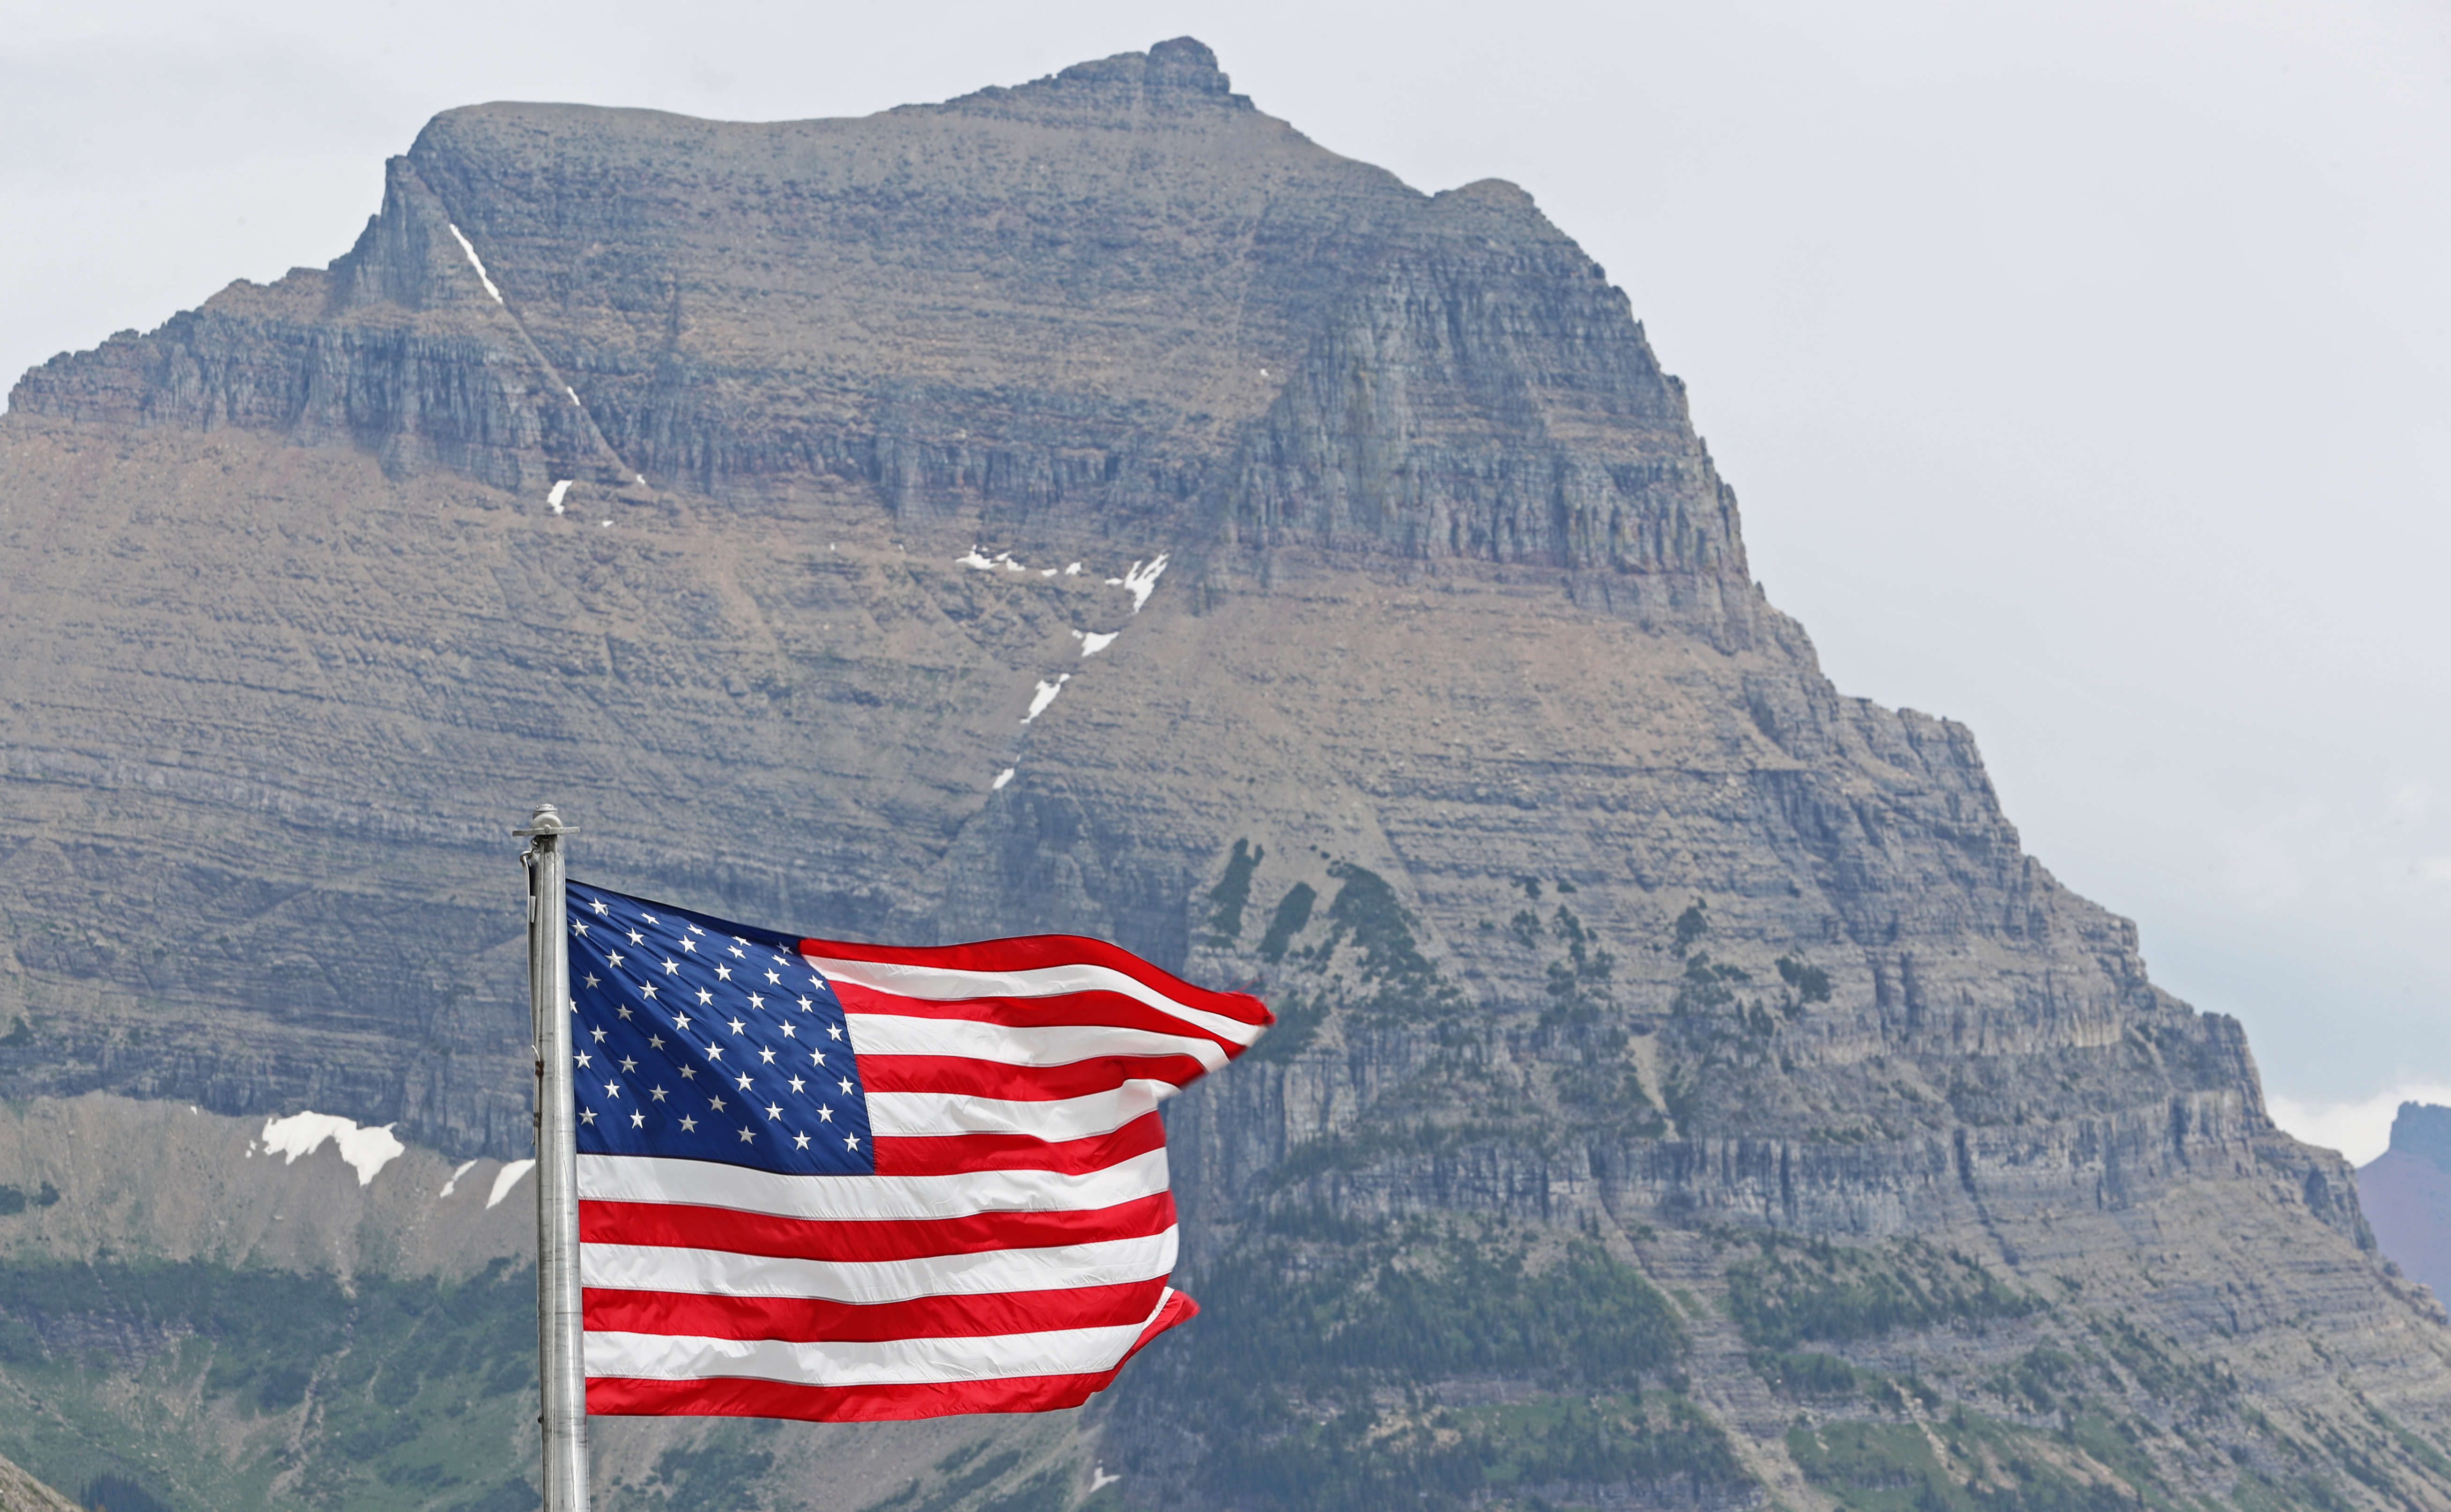 An American flag flies in front of the Logan Pass Visitor Center in Glacier National Park on July 26, 2018 in West Glacier, Montana.